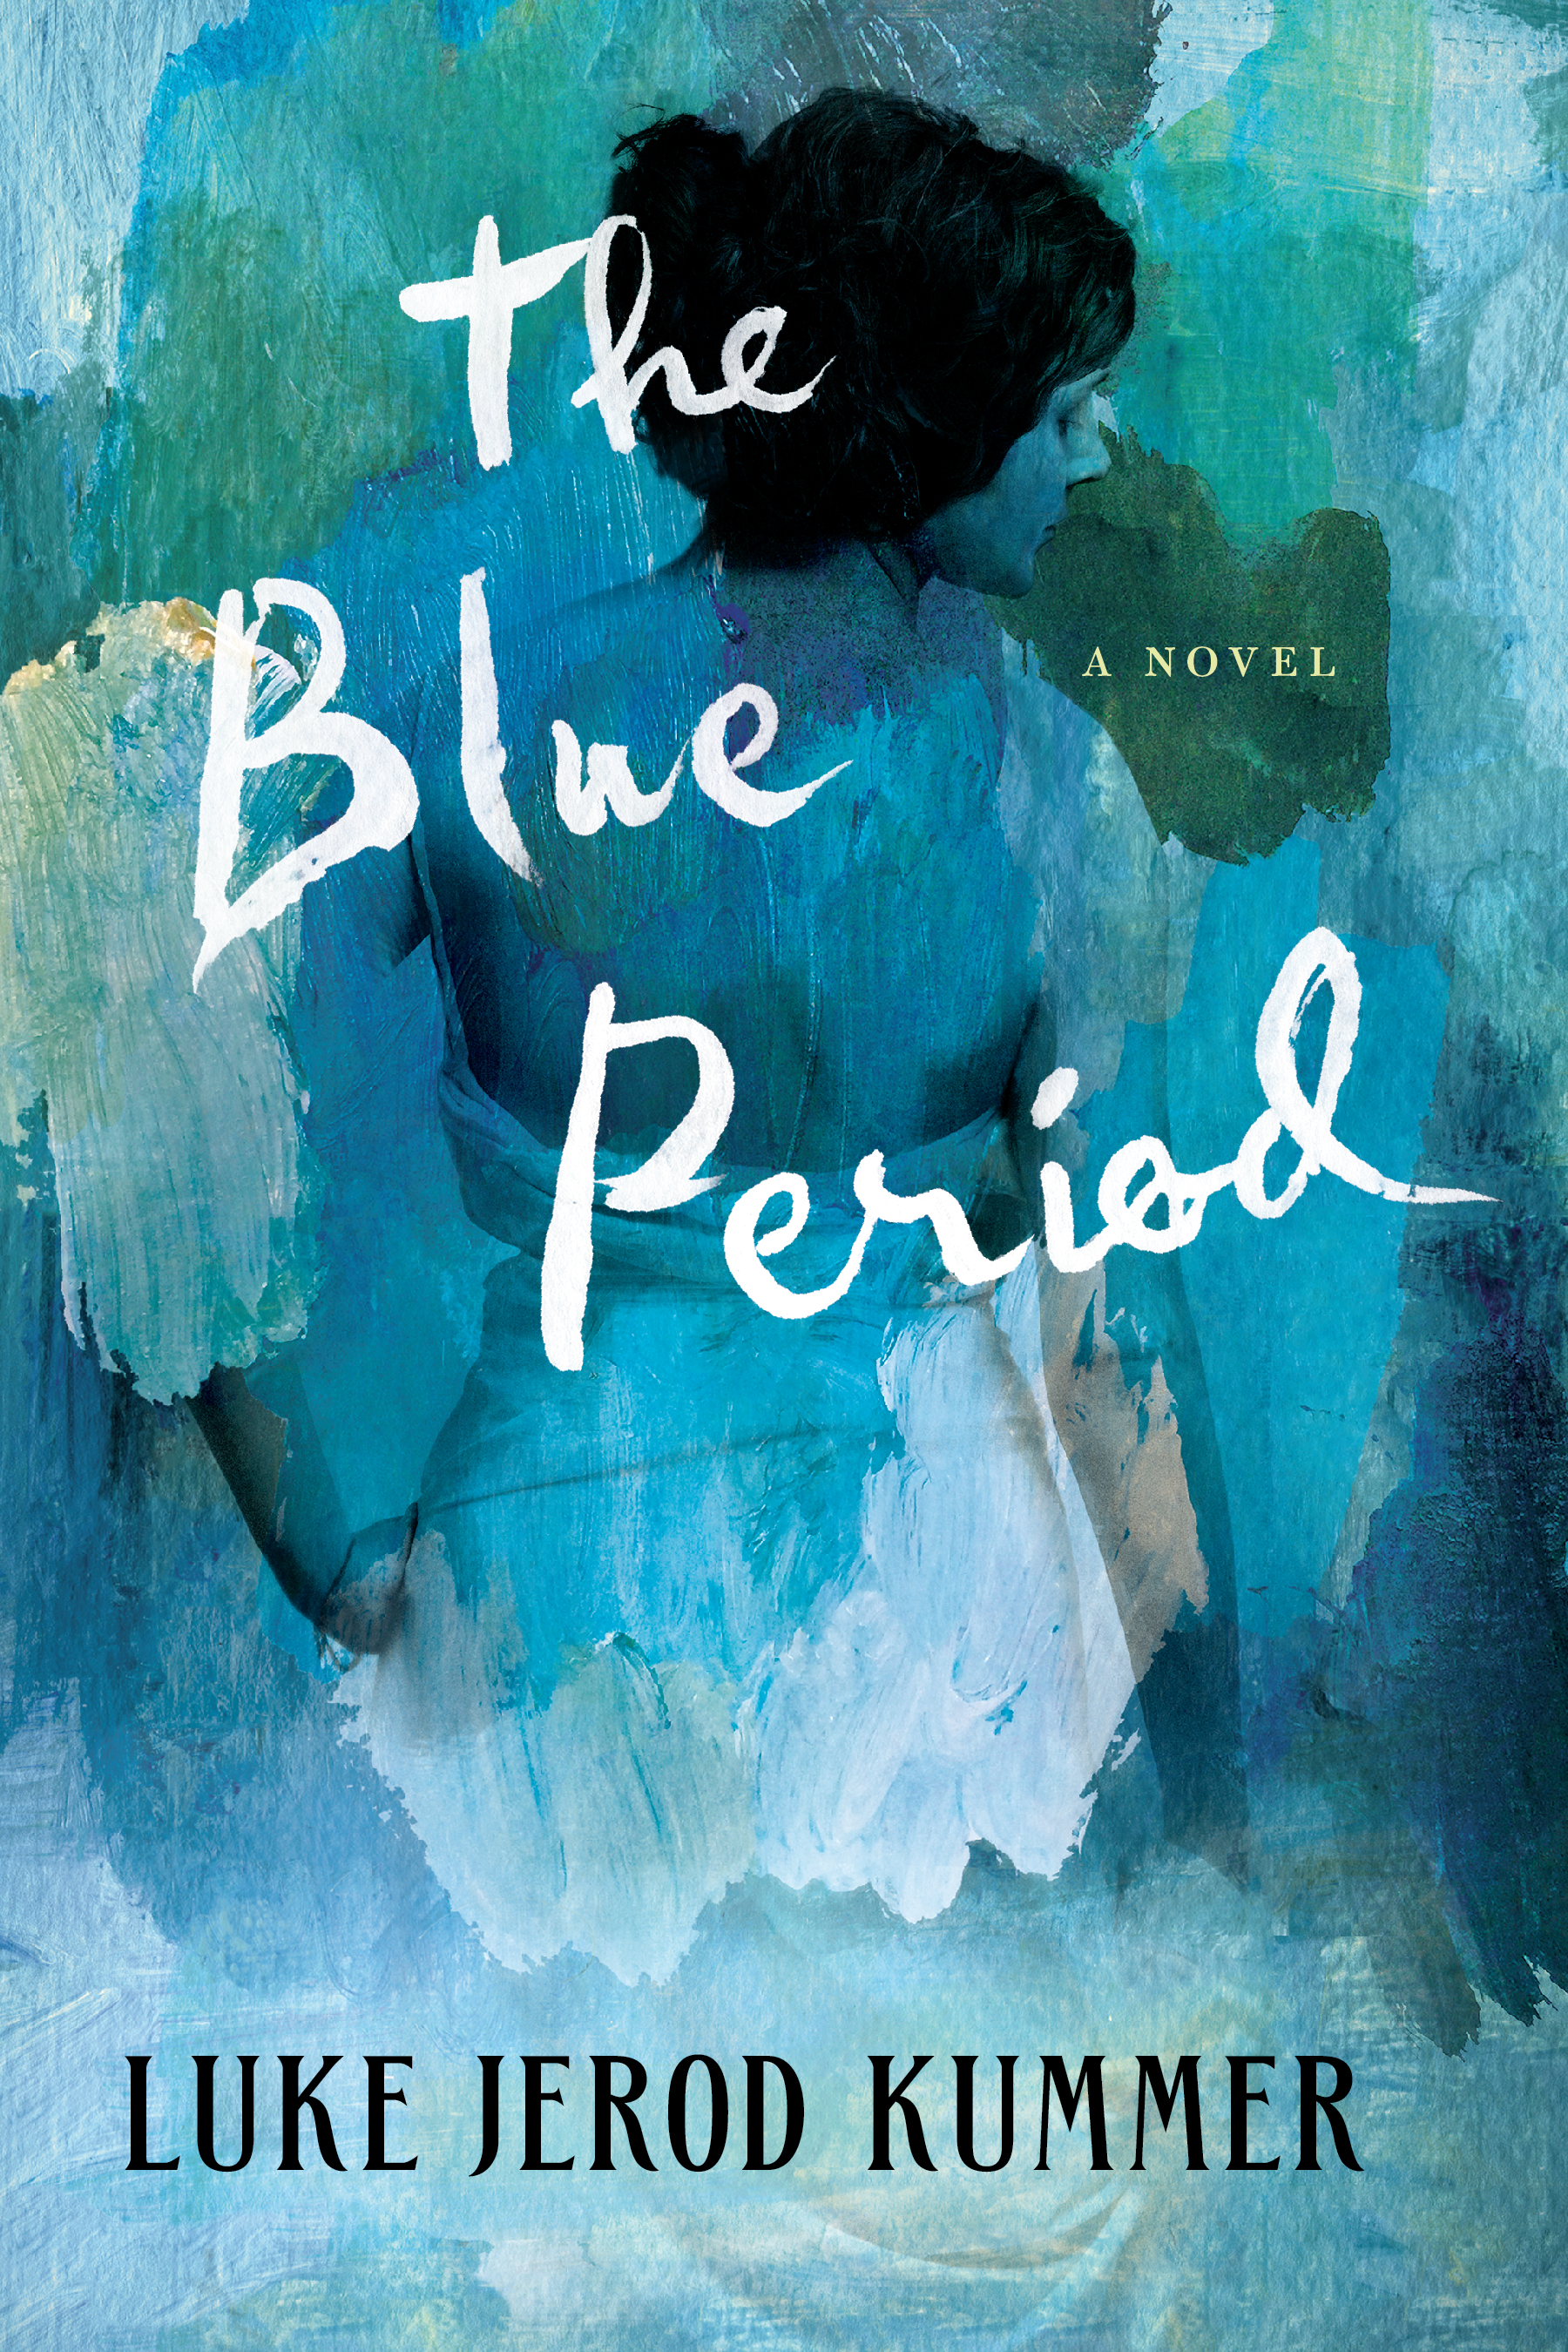 Book Launch: The Blue Period by Luke Jerod Kummer in conversation with Nellie Hermann